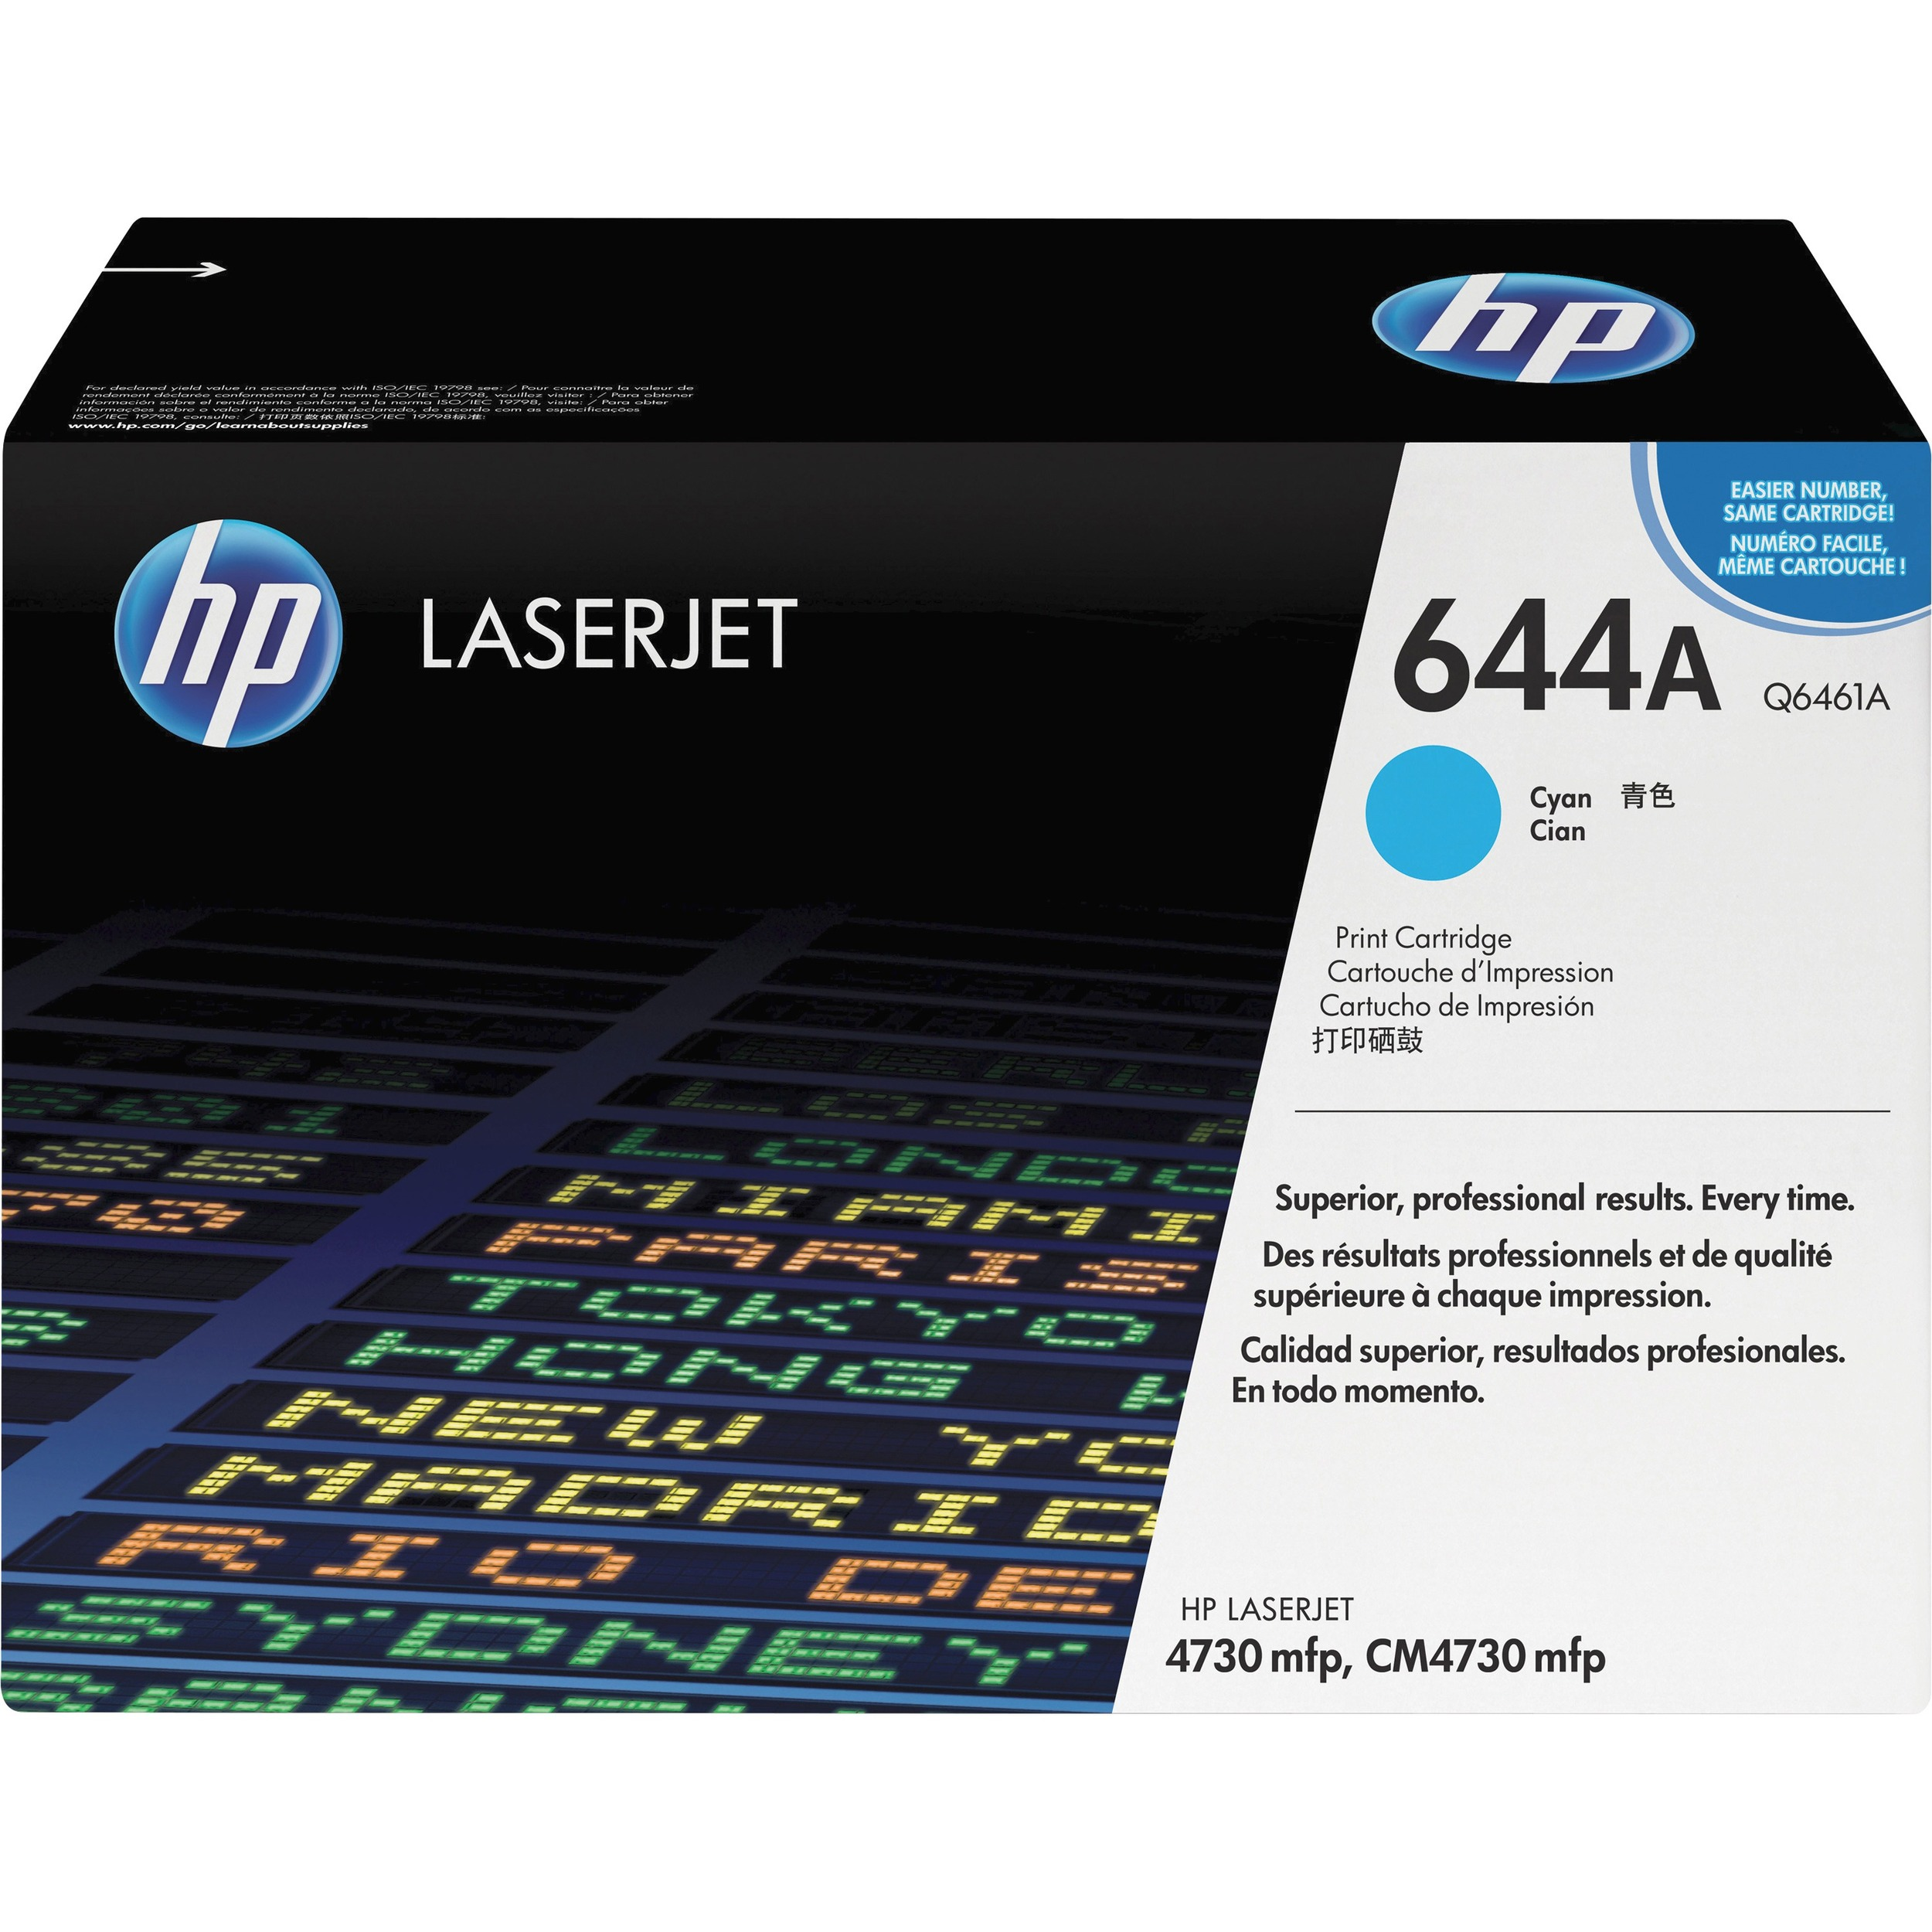 HP Q6461A Toner Cartridge - Cyan